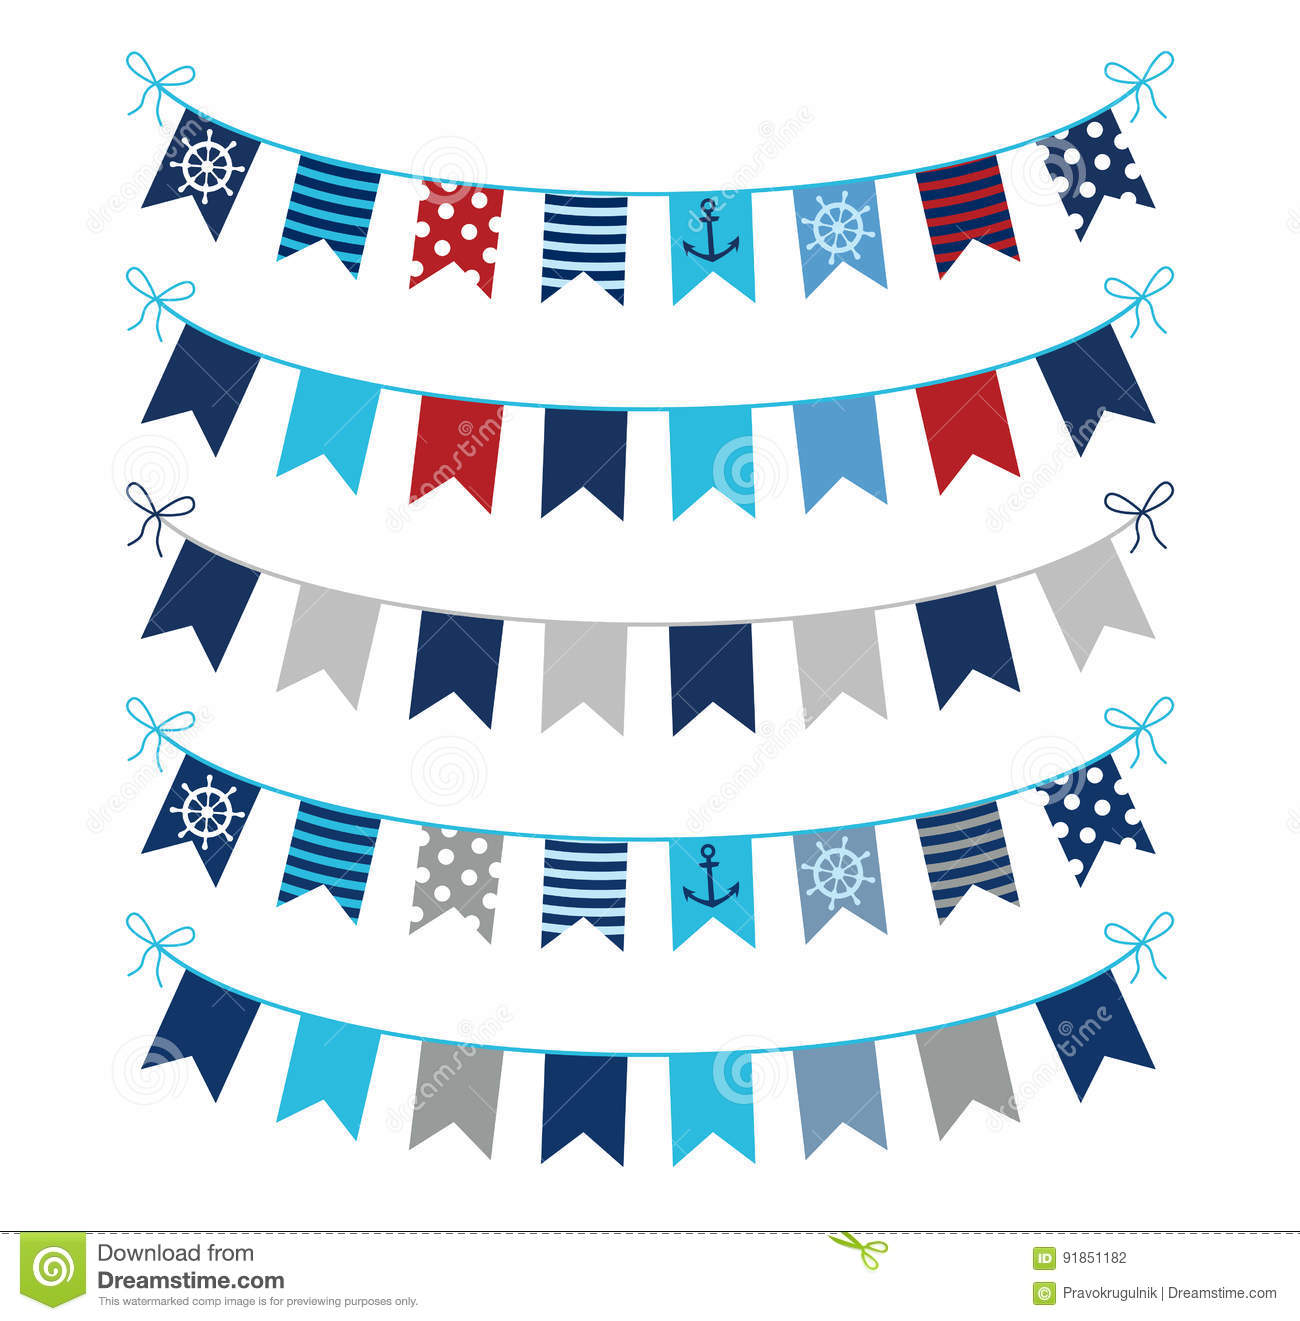 Nautical Buntings In Blue Red And Grey Stock Vector Illustration